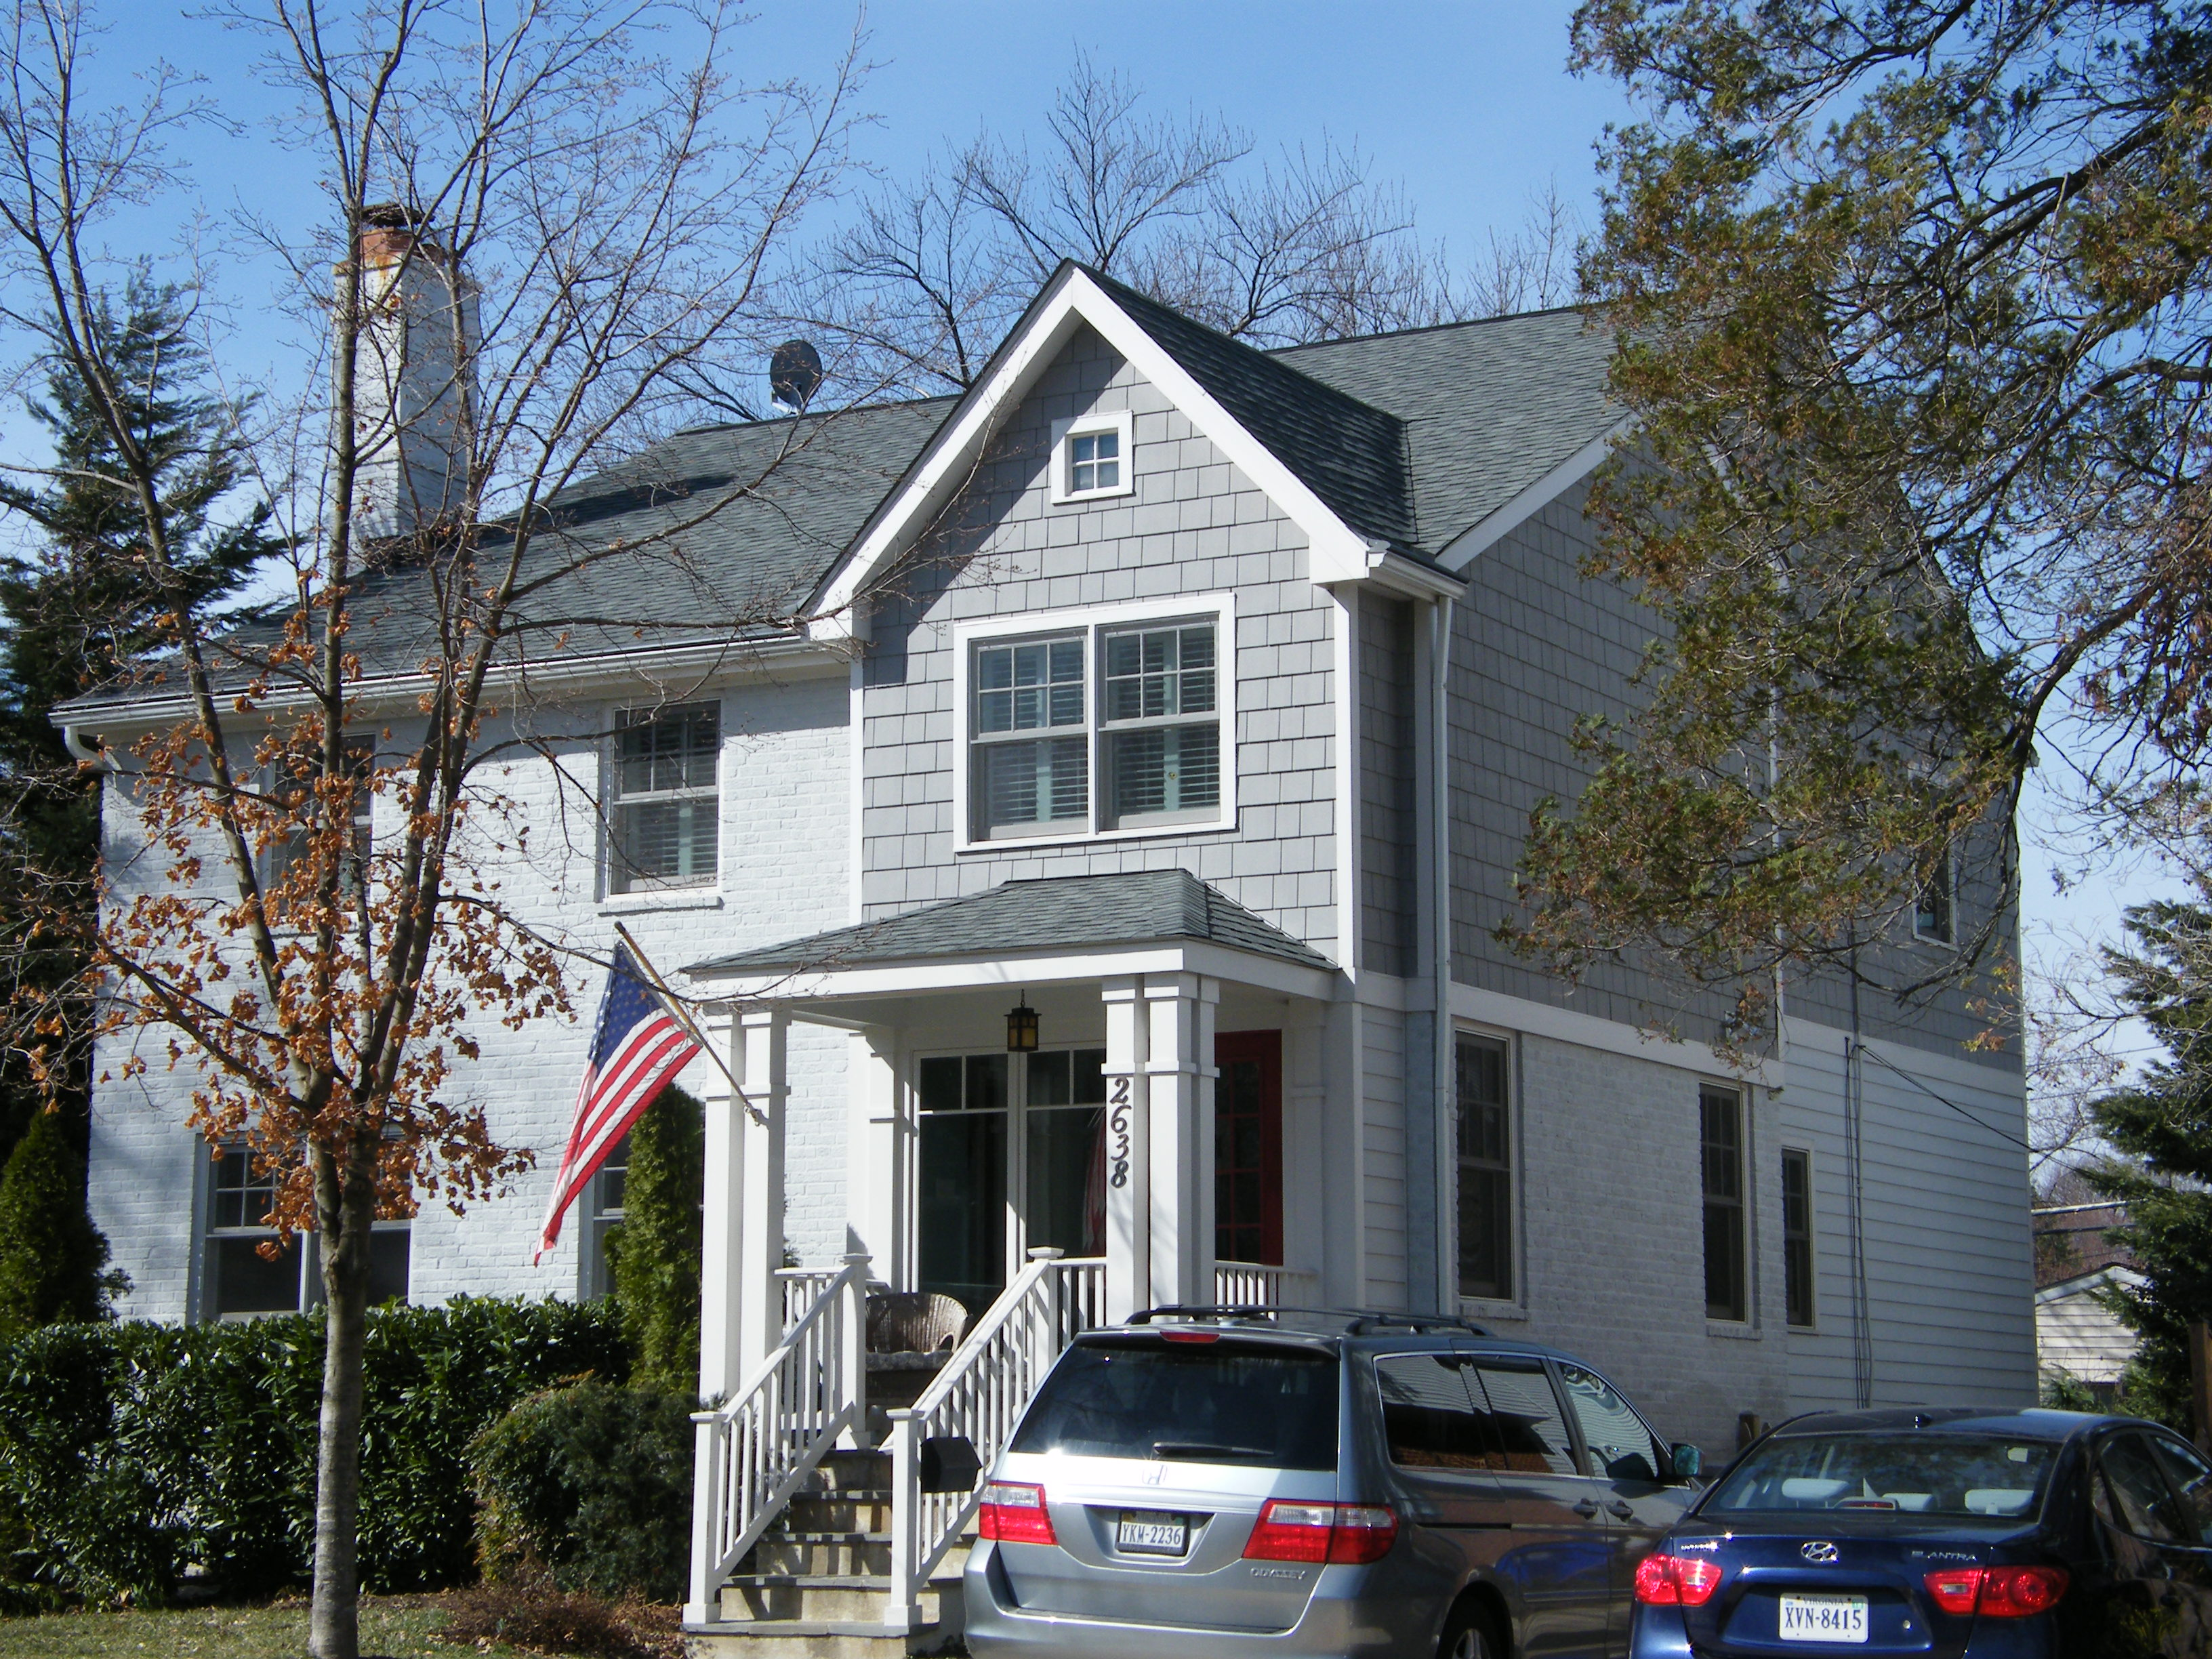 Two Story Home Remodeling Before And After on auto repair before and after, concrete before and after, windows before and after, interior design before and after, kitchens before and after, lawn care before and after, roof repair before and after, power washing before and after, graphic design before and after, cabinets before and after, photography before and after, food before and after, fire restoration before and after, roofing before and after, construction before and after, family before and after, real estate before and after, mold remediation before and after, furniture before and after, painting before and after,